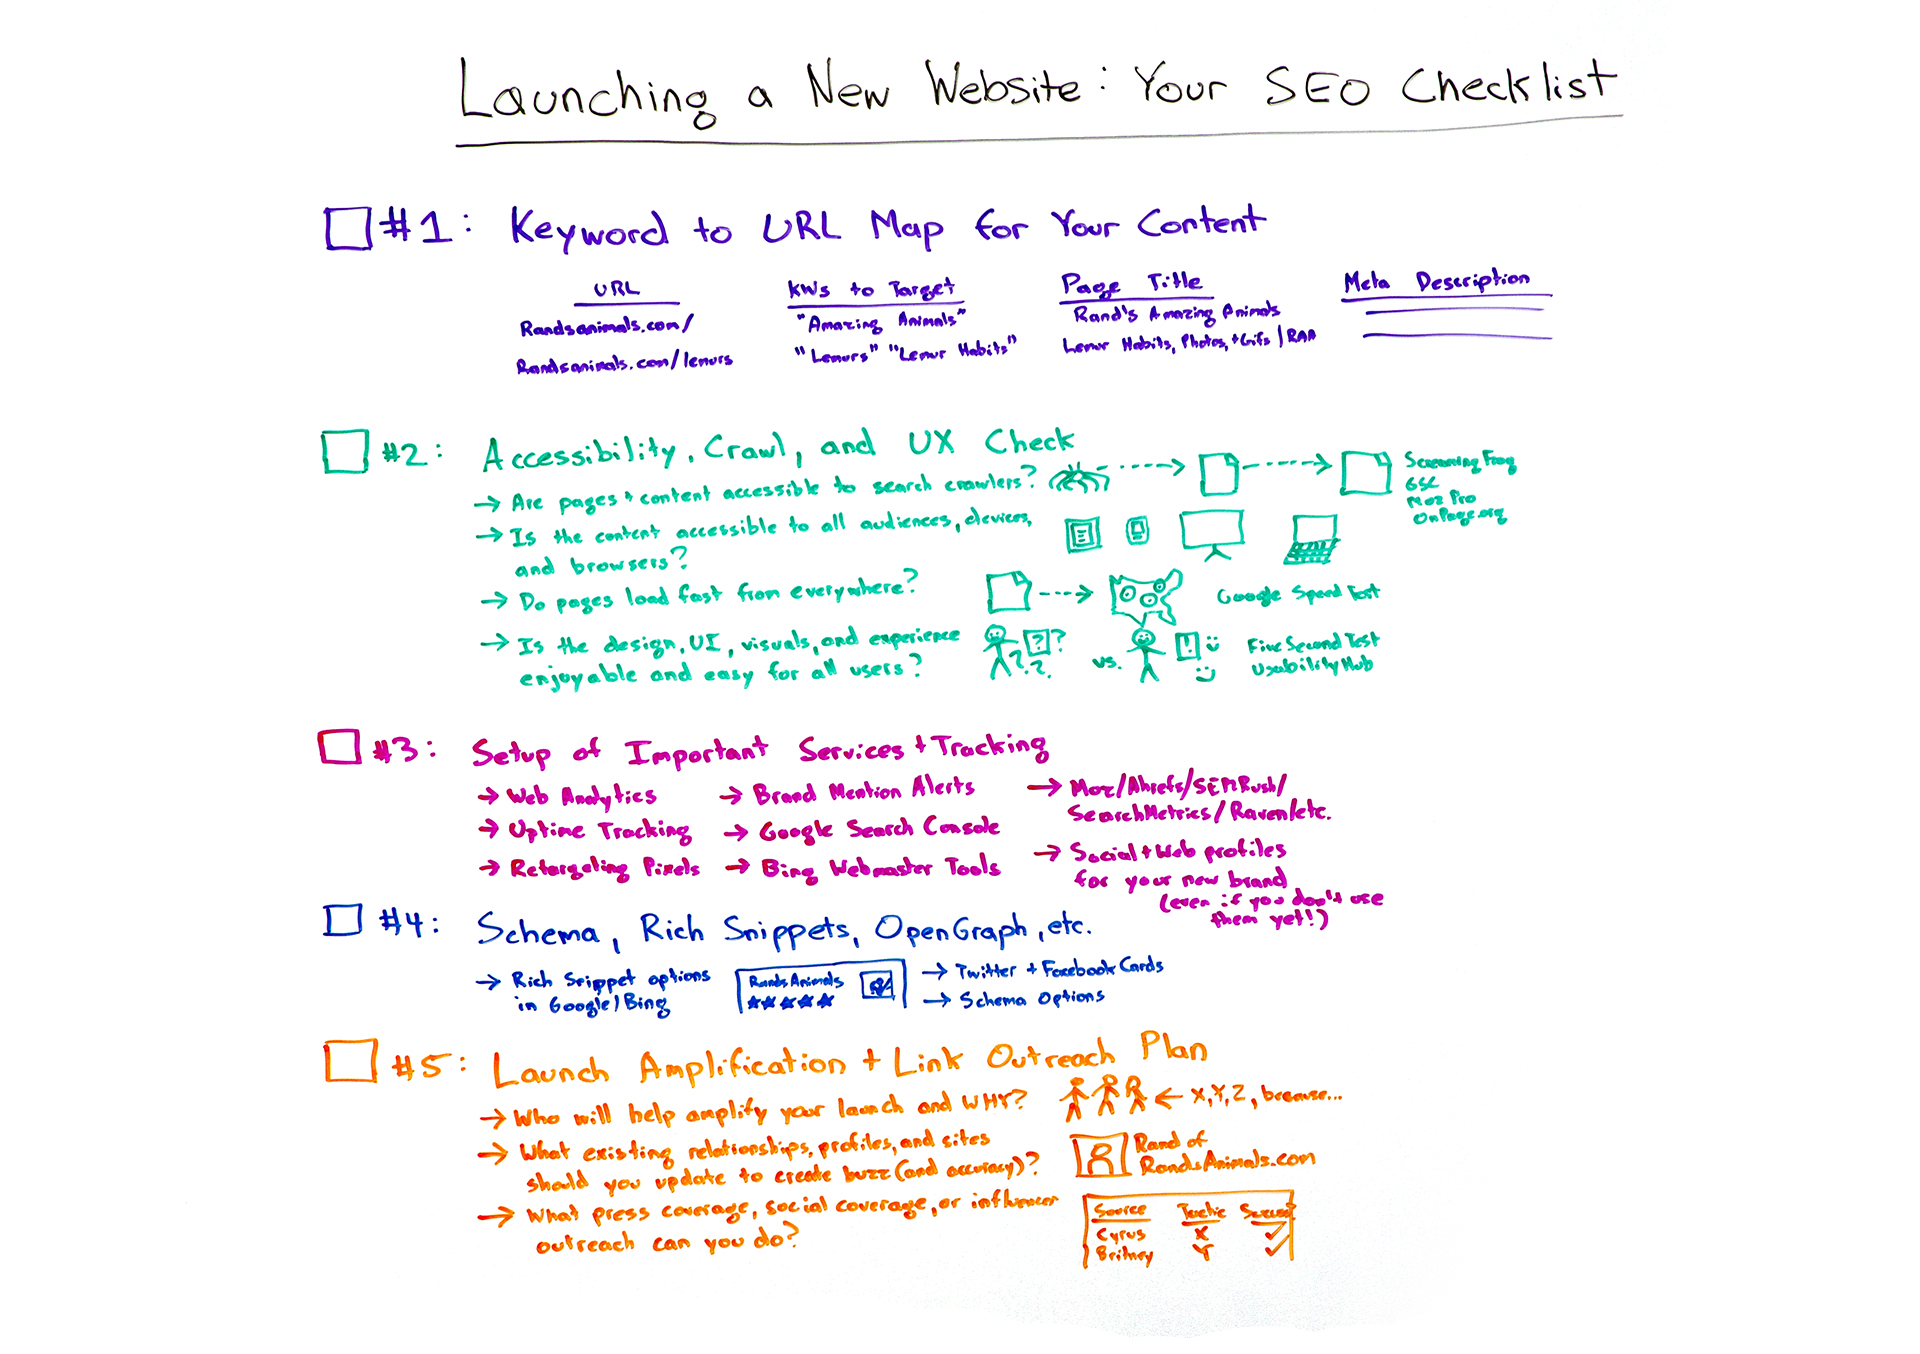 SEO checklist when launching a new website